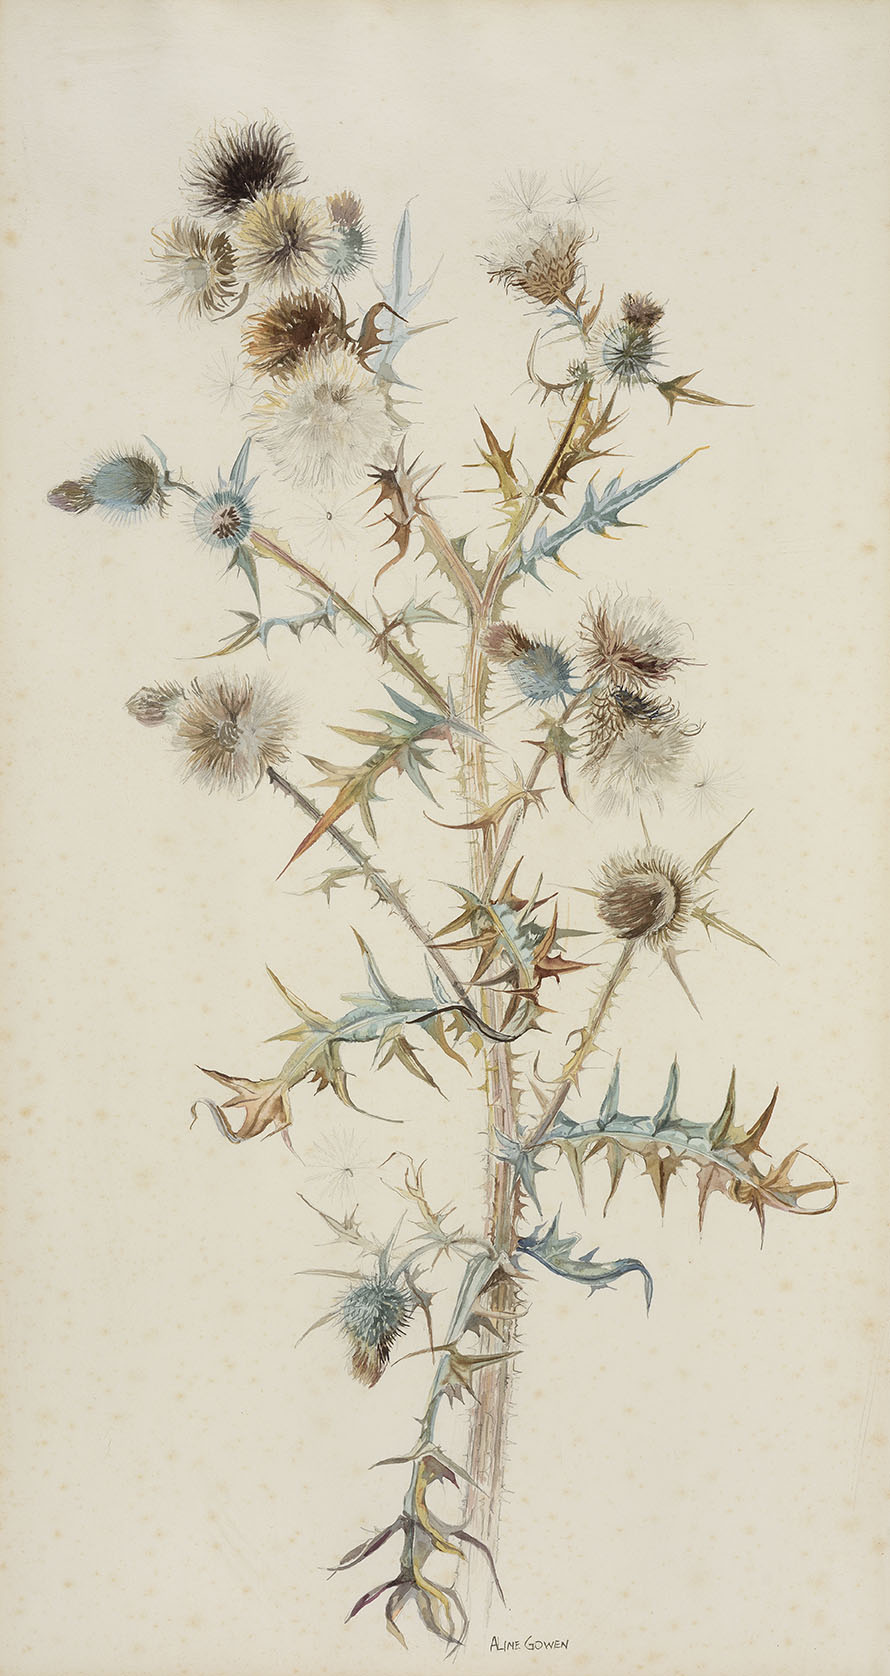 Aline Gowen (1907-1999)    Spear Thistle,  c.1968, Watercolour on paper, 28 ¾ x 15 ¼ in, Signed  [CAS 12]